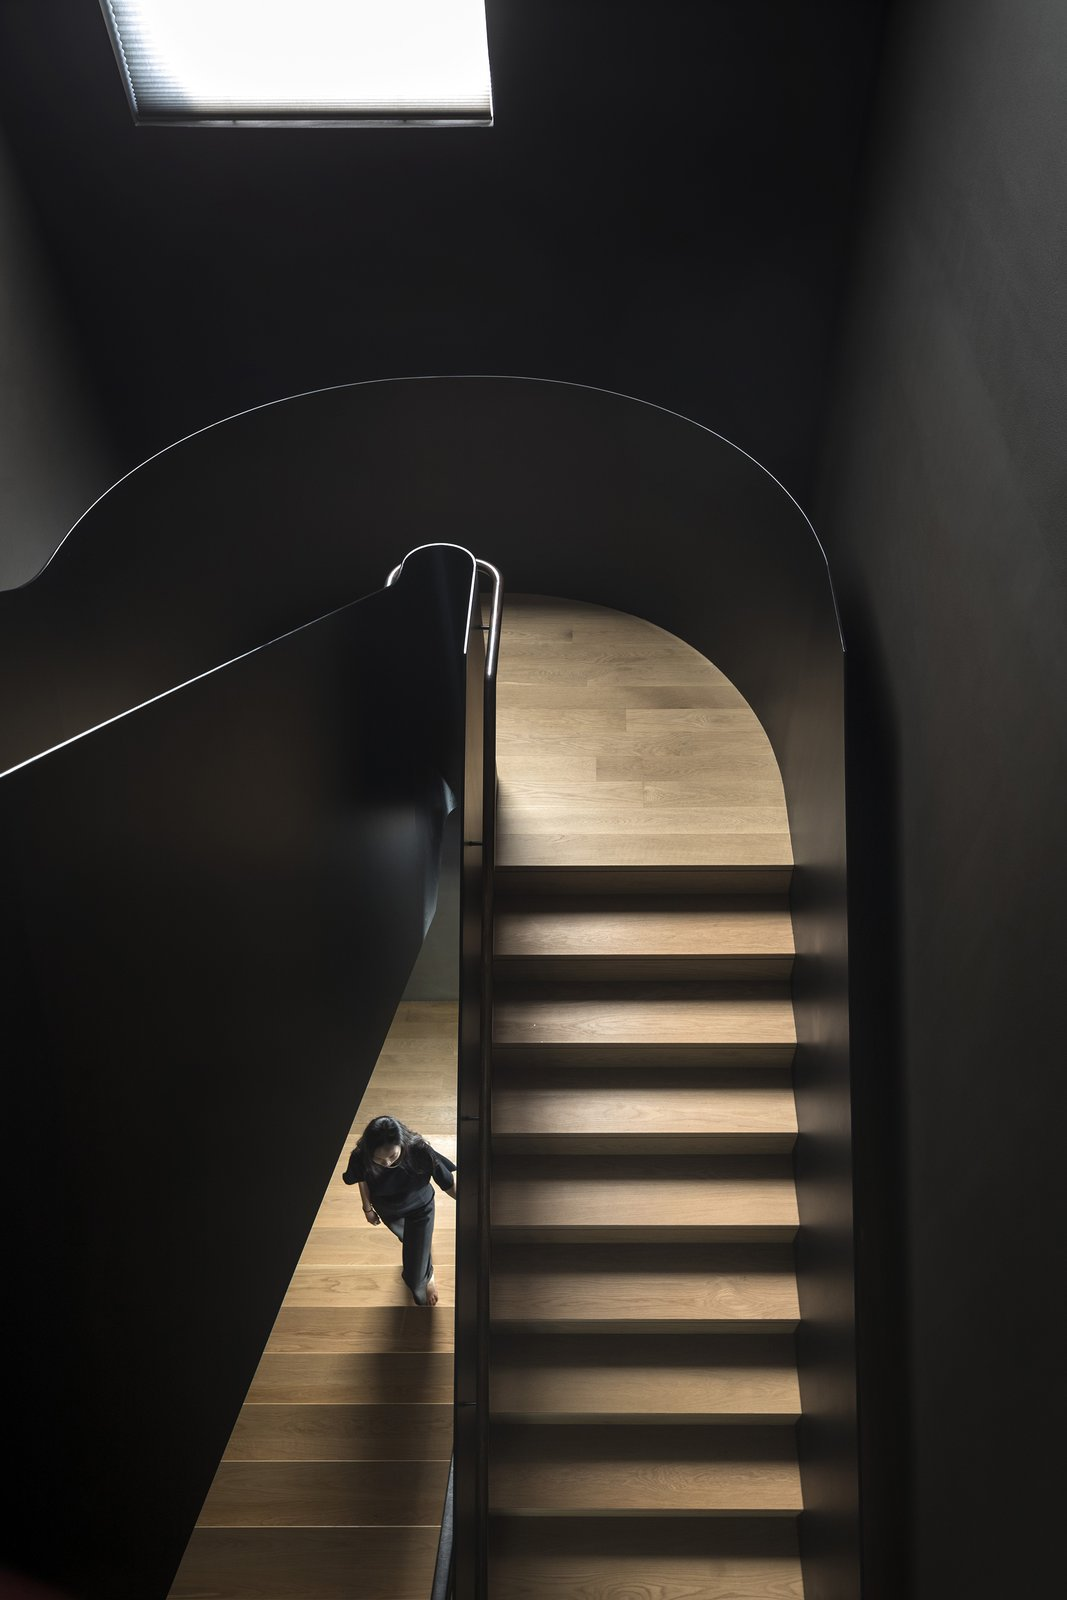 Aperture House by Formwerkz Architects staircase, staircase design, monochrome, sculptural staircase, curved staircase